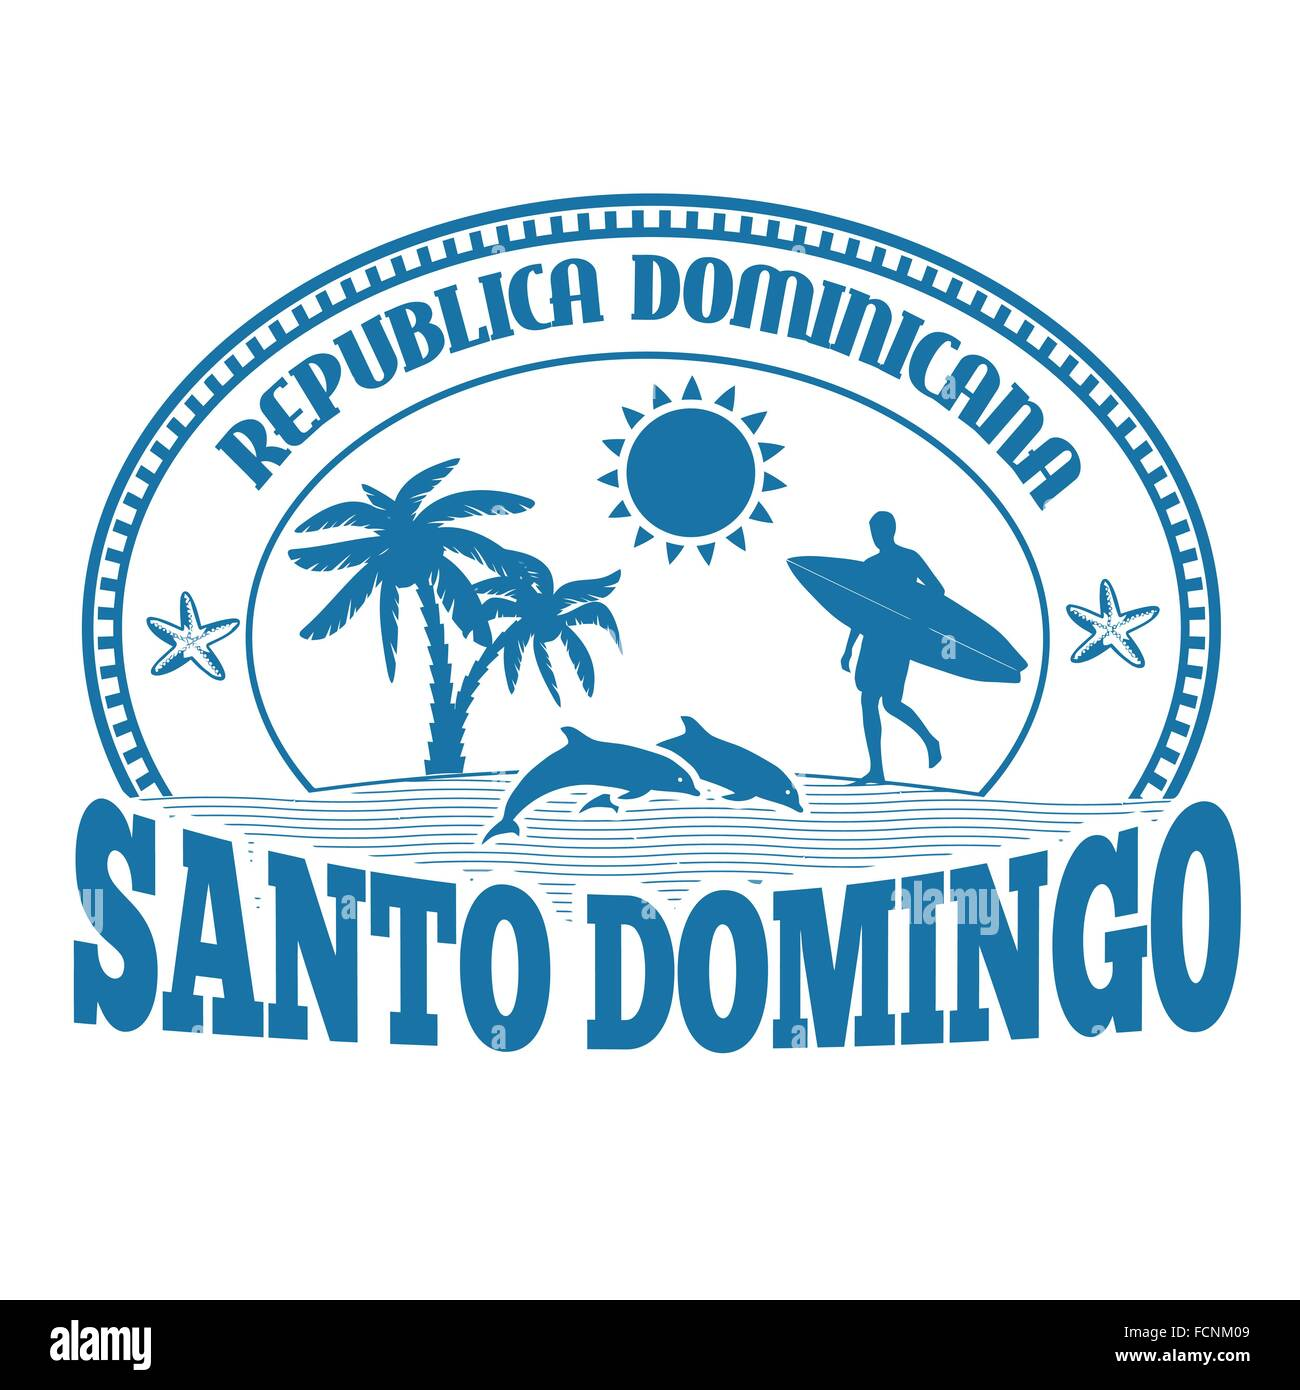 Santo Domingo, Dominican Republic, stamp or label on white background, vector illustration Stock Vector